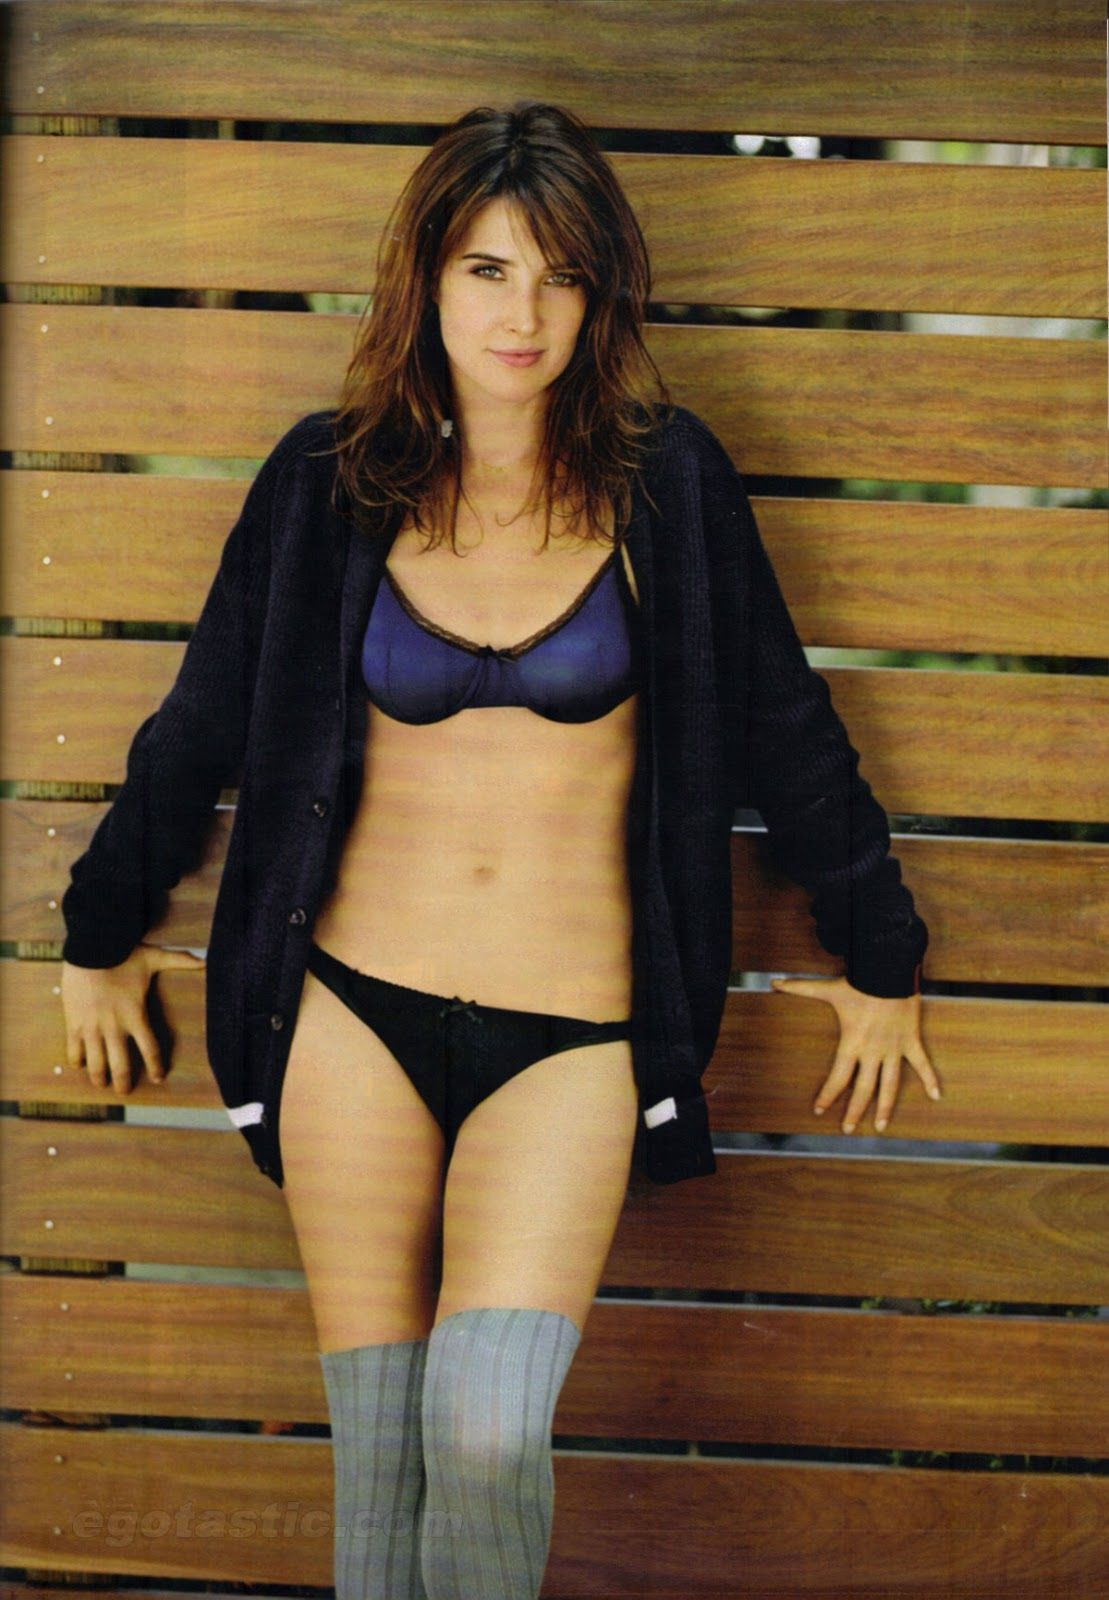 Leaked Cobie Smulders nude photos 2019